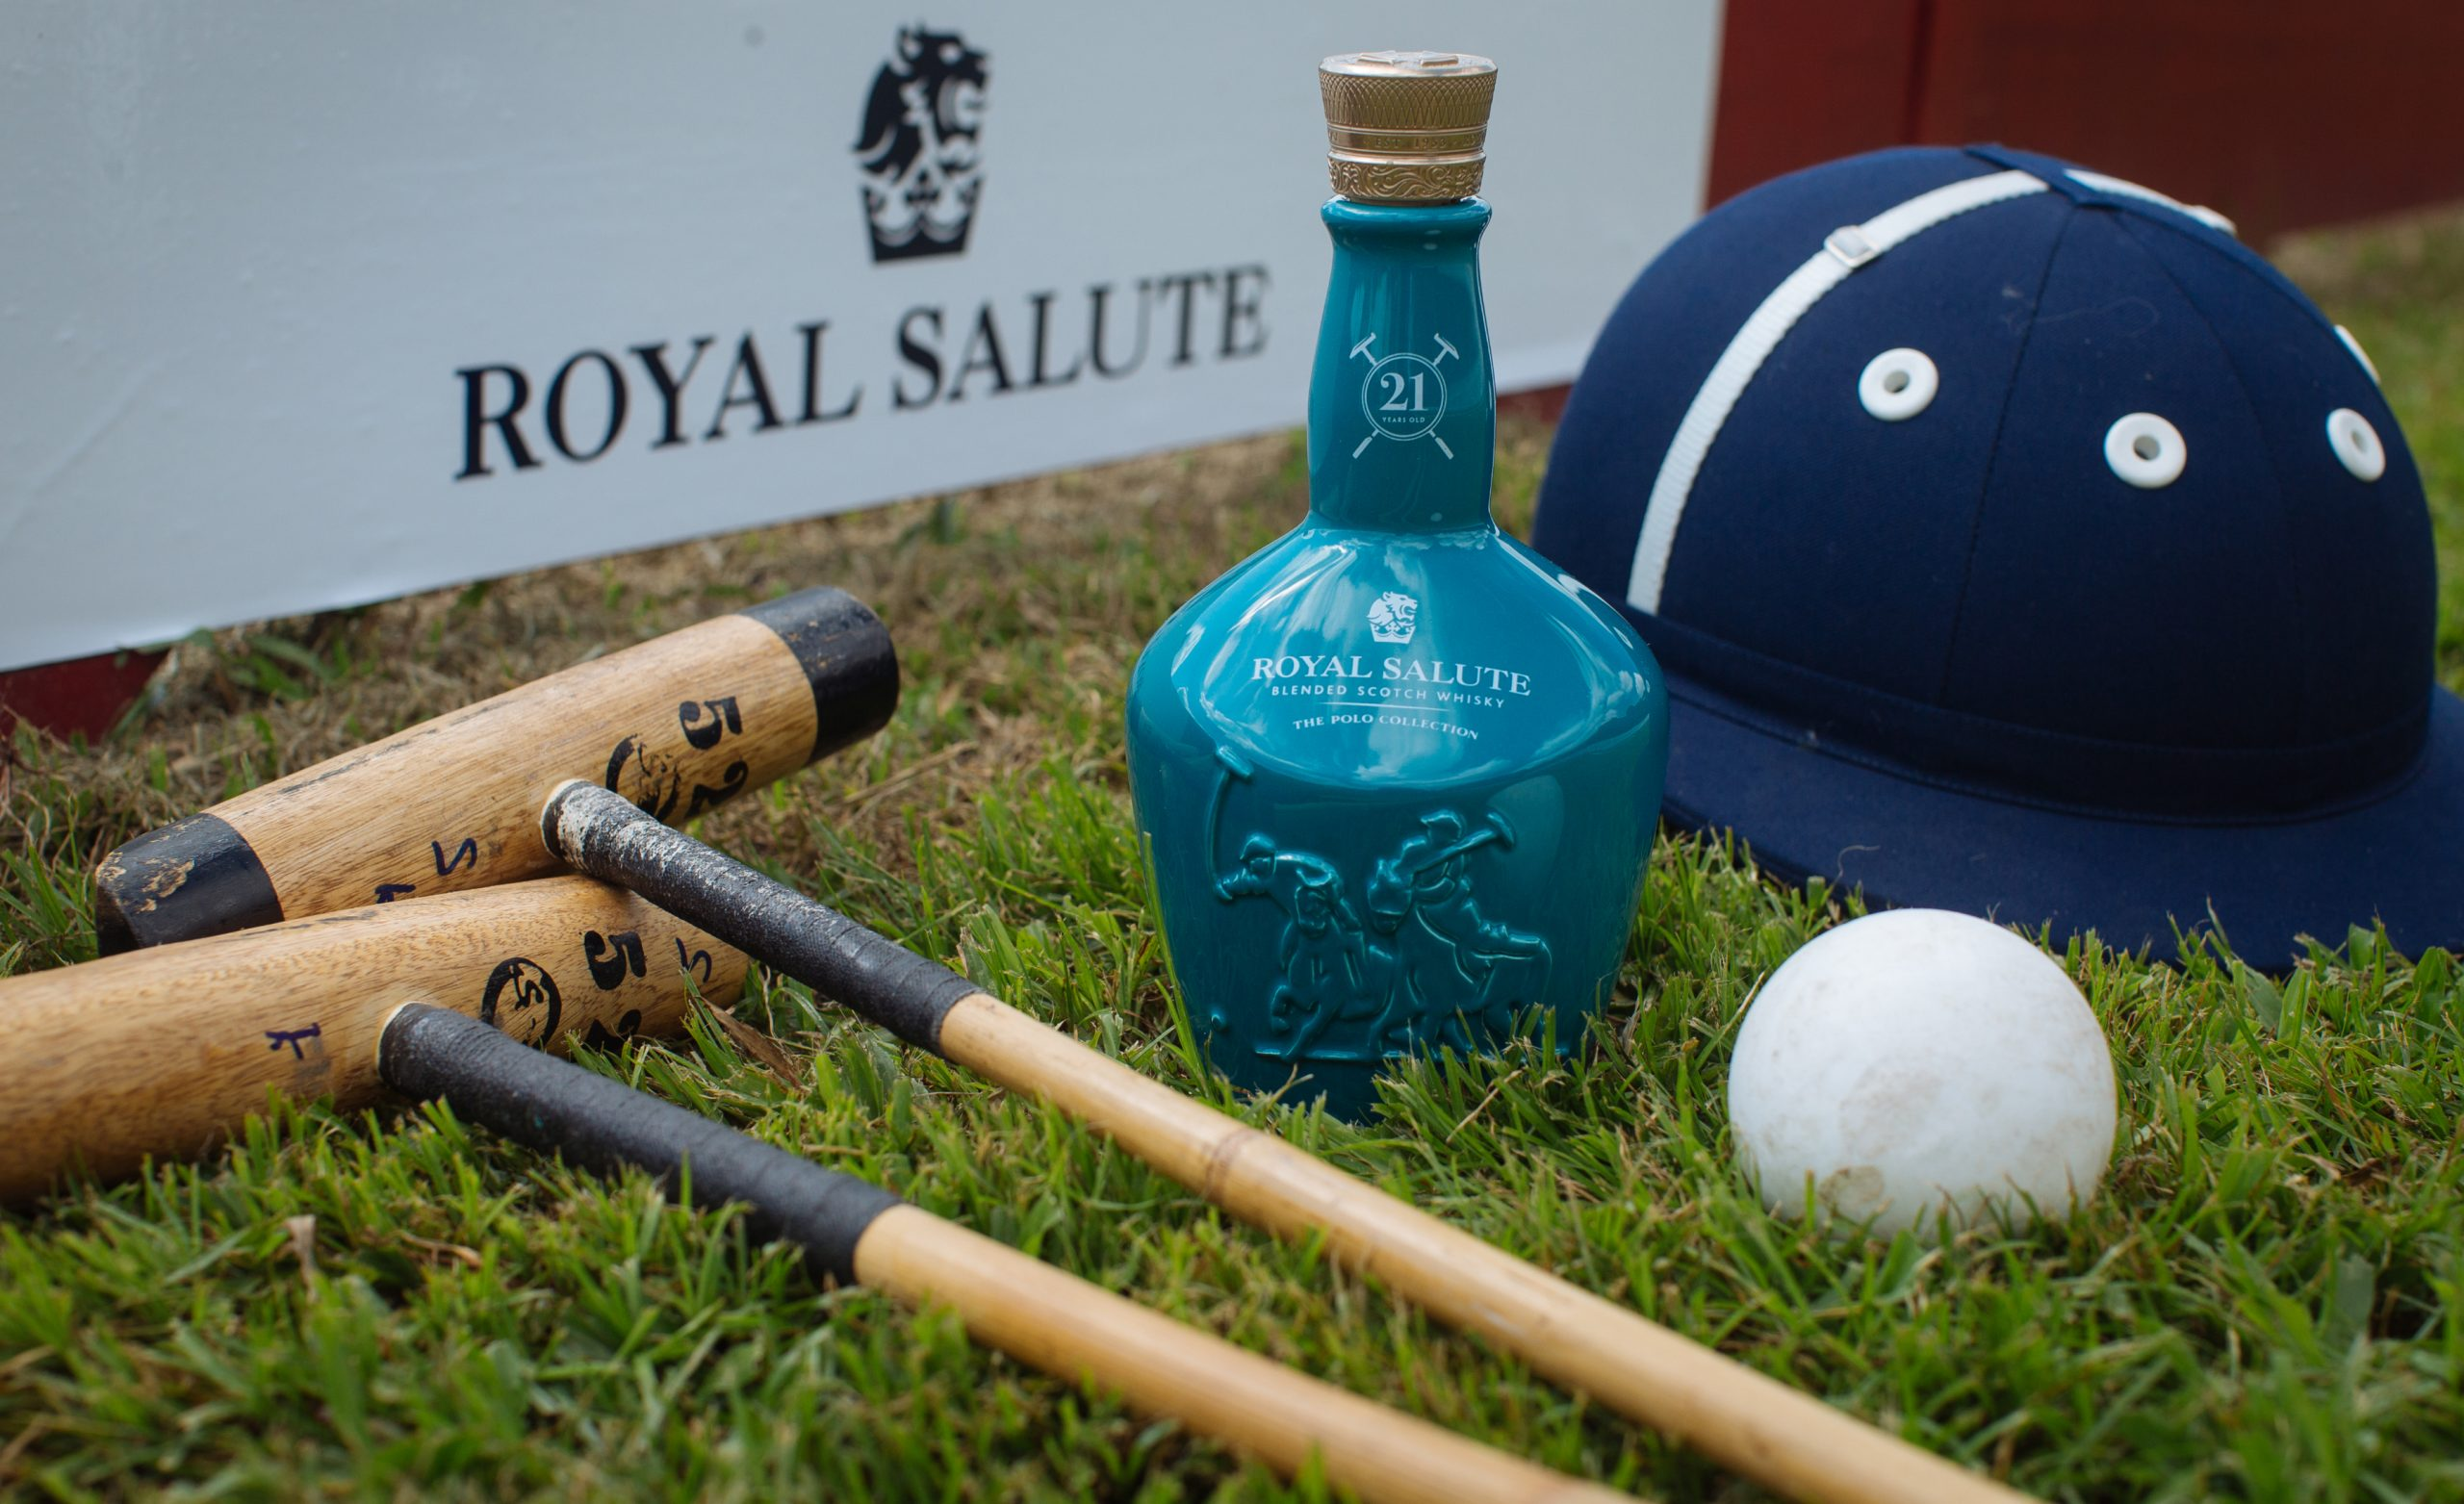 Royal Salute Blended Scotch Whisky The Polo Edition